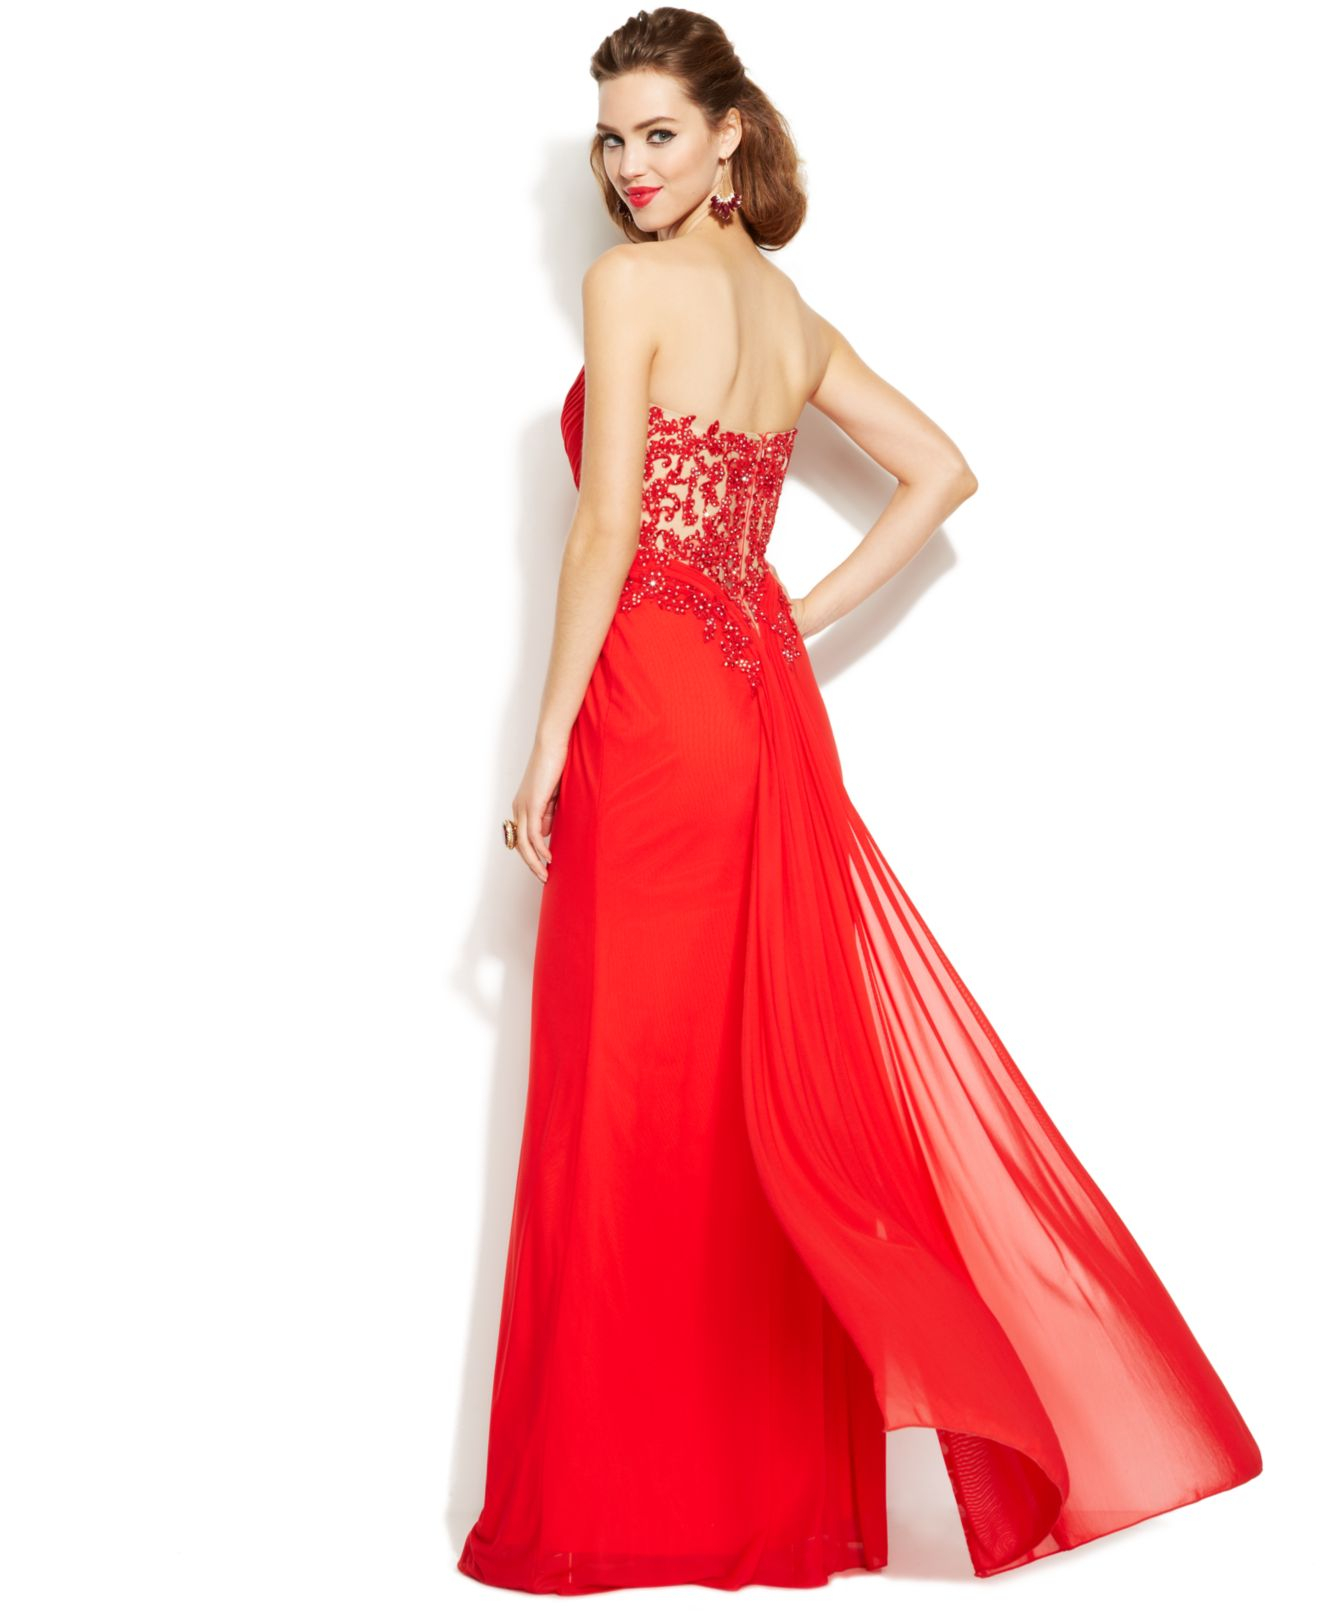 c2a8737517fb Xscape Embellished Illusion Lace Strapless Gown in Red - Lyst